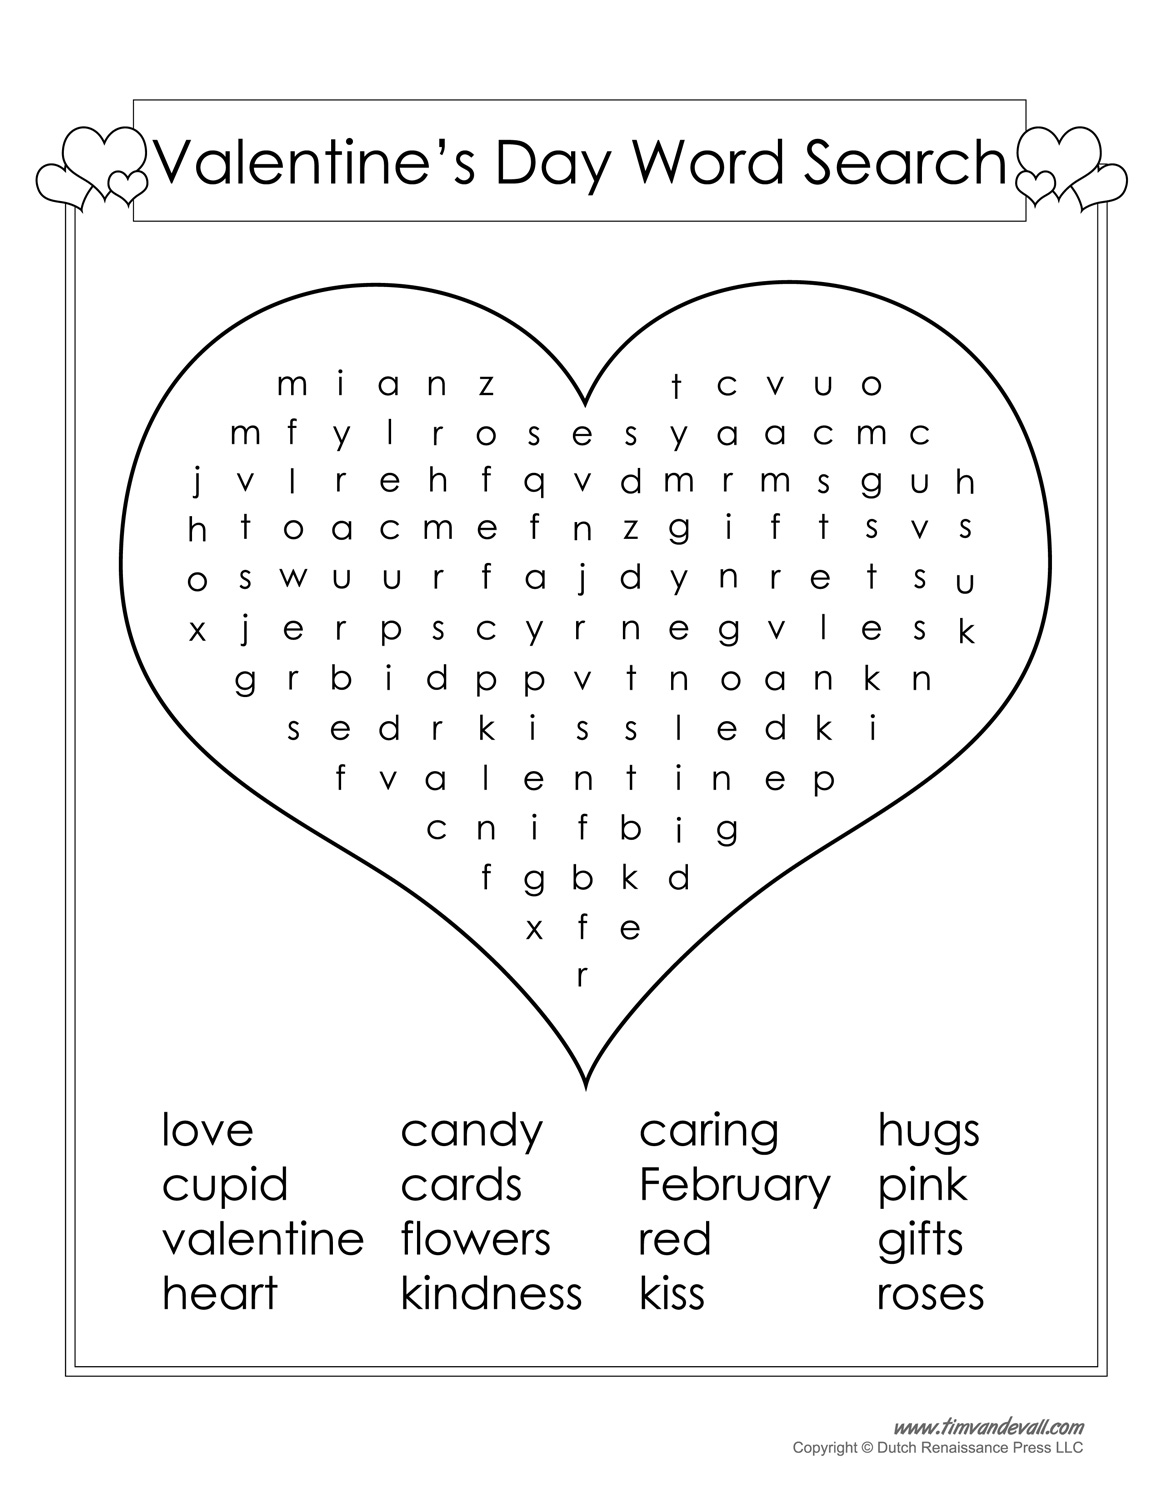 image about Valentine Puzzles Printable identify 12 Valentines Working day Term Look